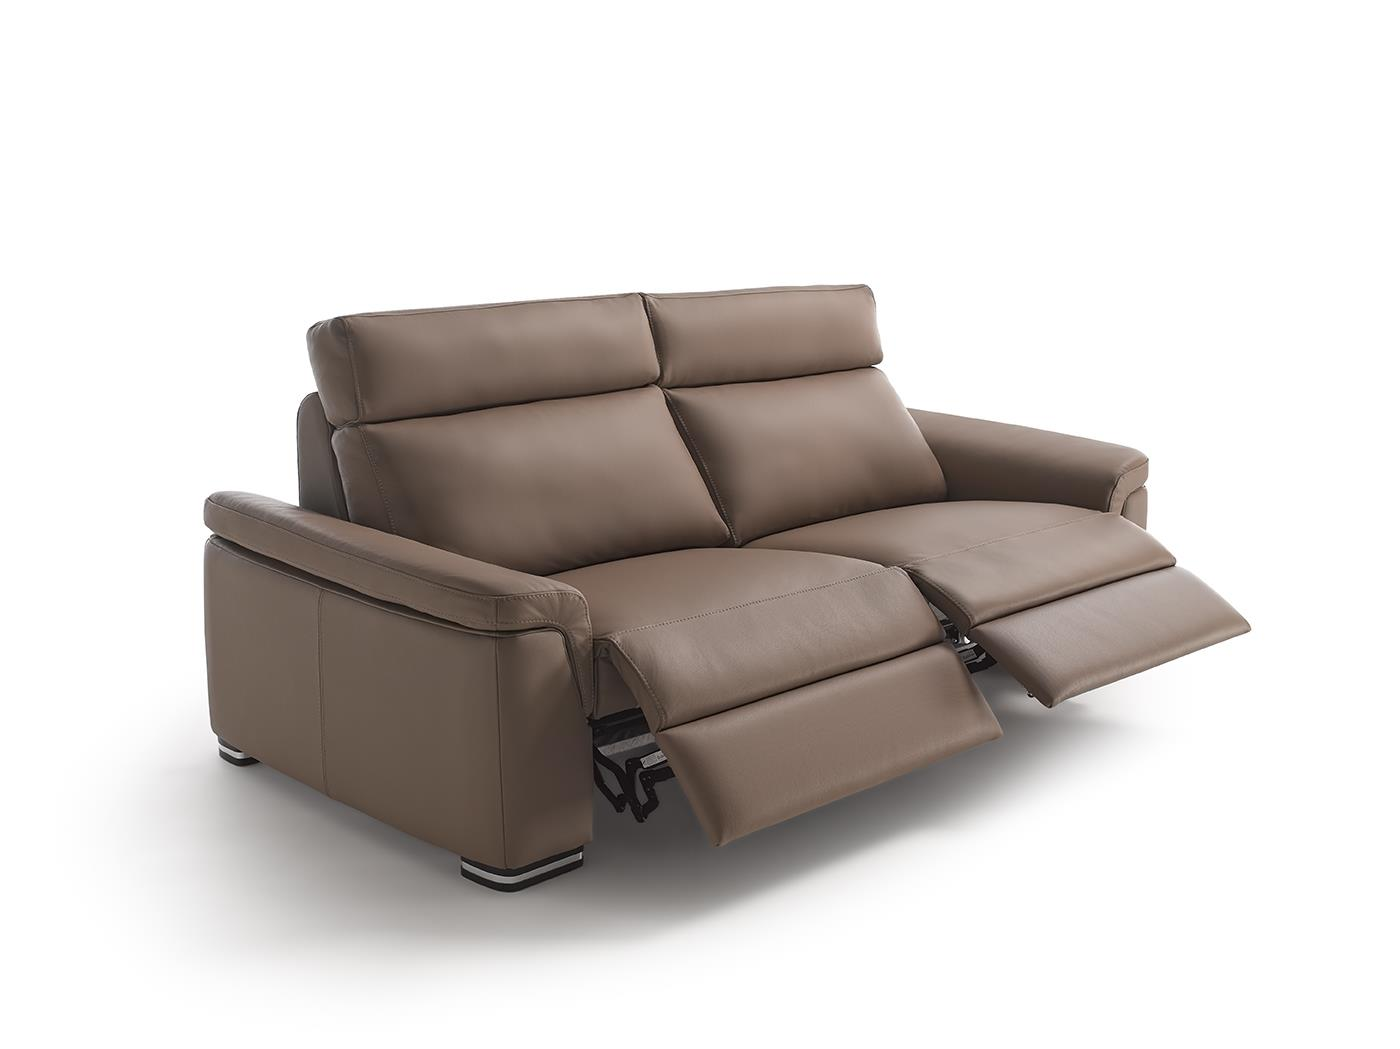 GALA 198 Fabric 3  Seater Reclining Sofa.